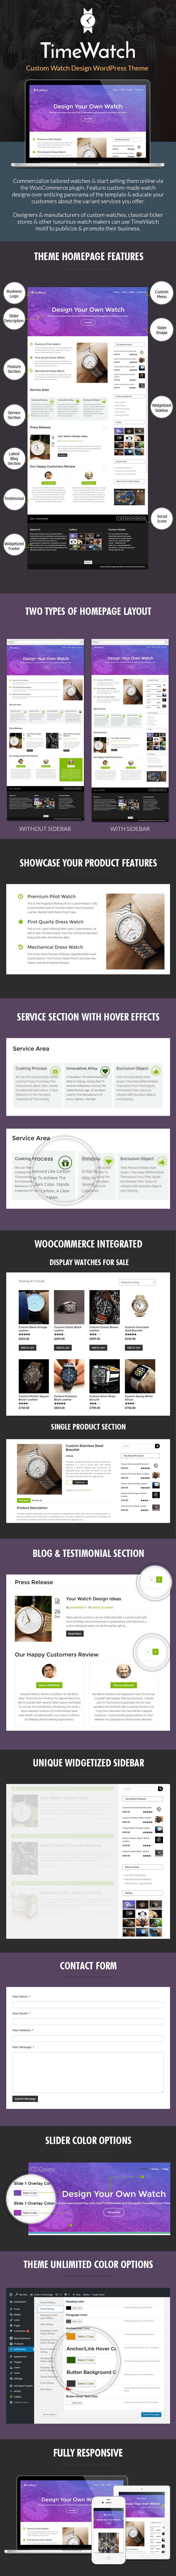 Custom Watch Design Sales Page